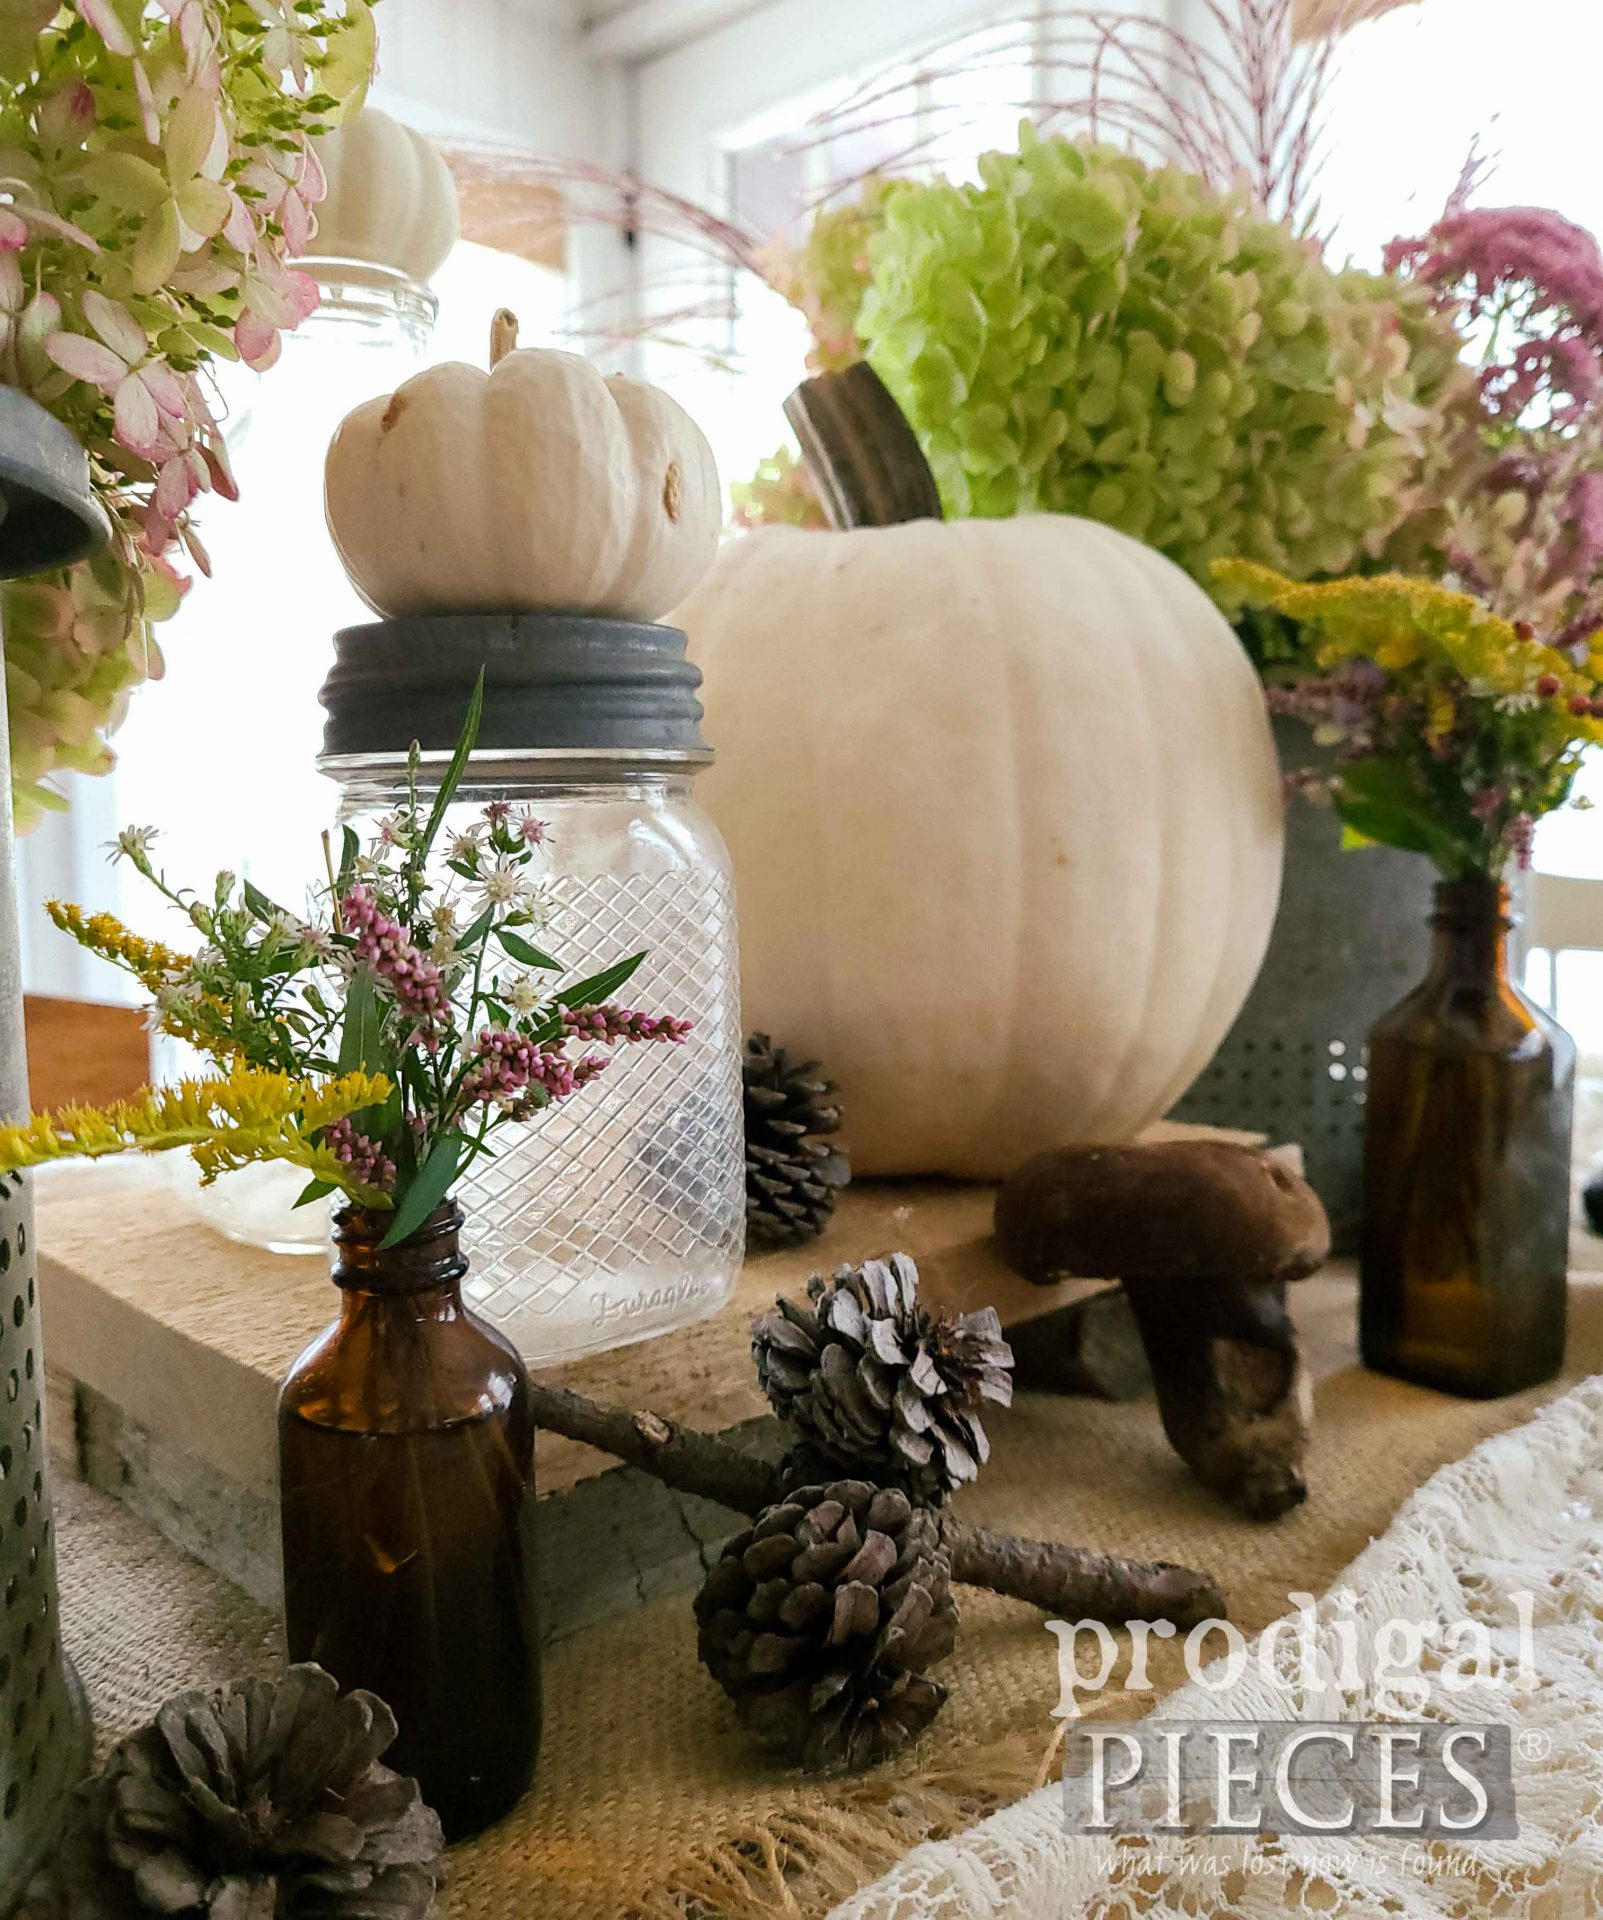 Farmhouse Style Fall Tablescape with Natural & Thrifted Elements by Larissa of Prodigal Pieces | prodigalpieces.com #prodigalpieces #diy #home #fall #farmhouse #homedecor